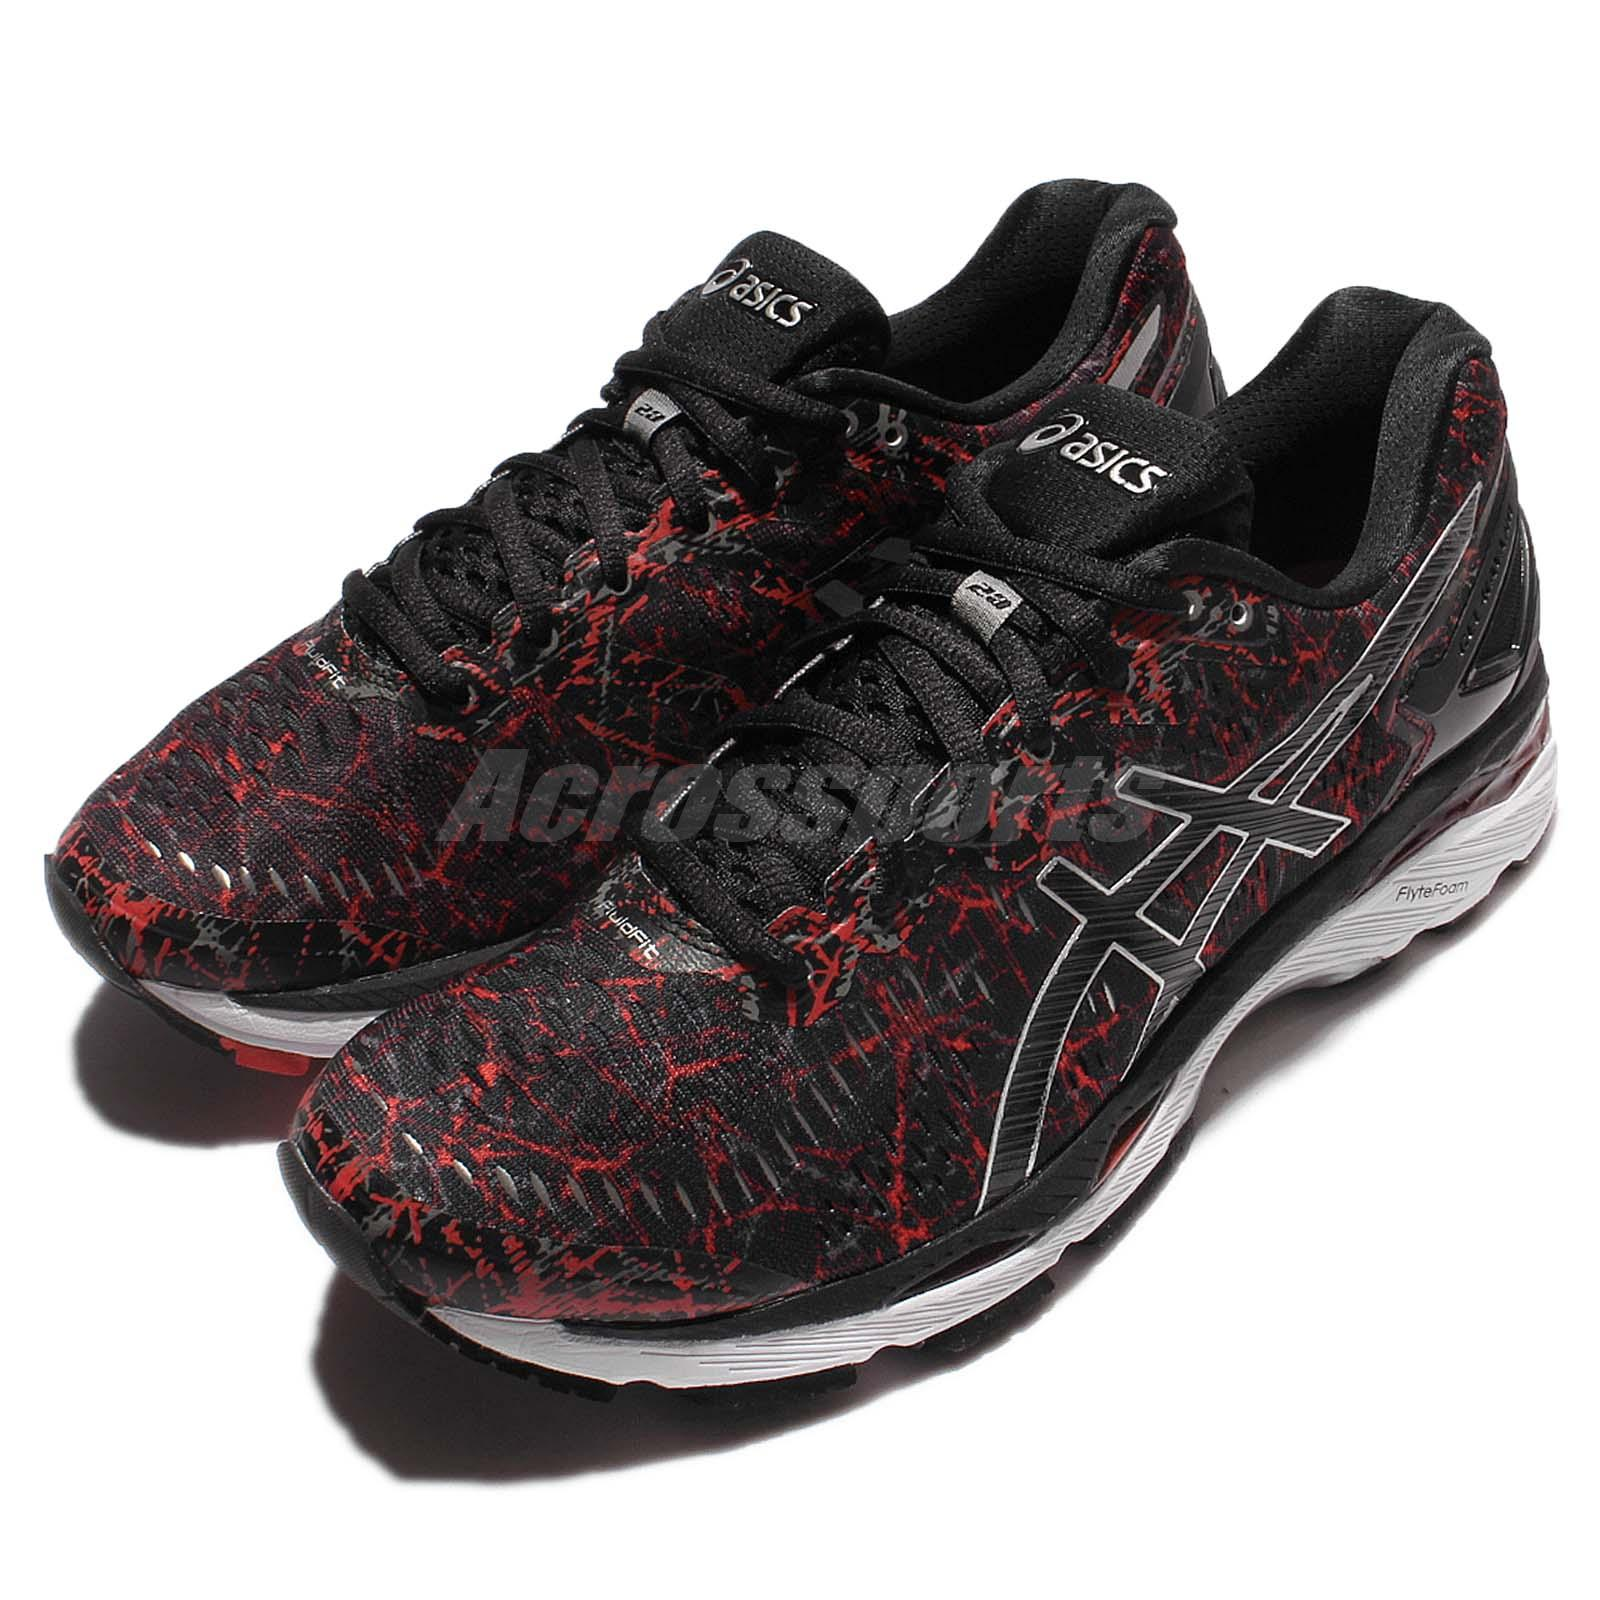 T6A0N-2390 Gel Kayano 23 LE Men Running Shoes Sneakers Black Red Asics